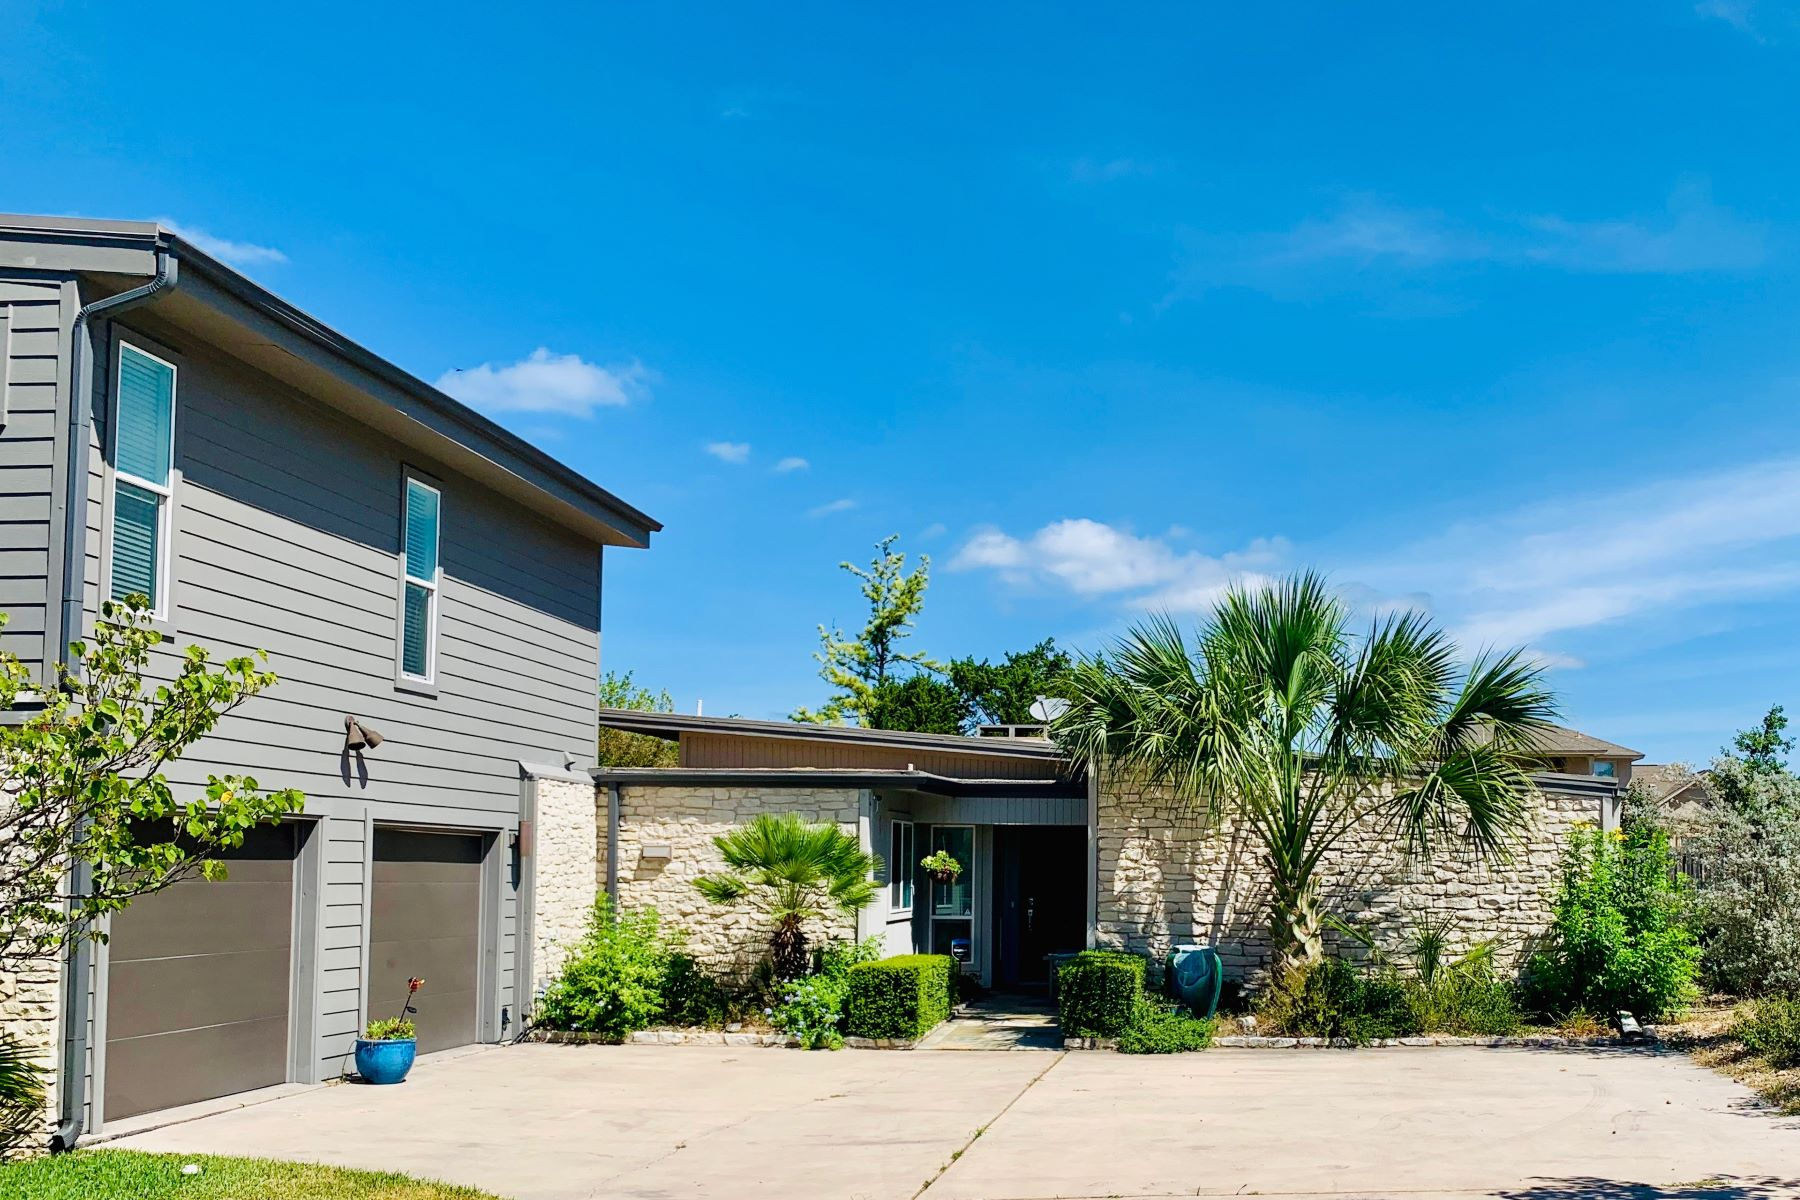 Single Family Homes for Sale at 103 Scamper Cove, Lakeway, TX 78734 103 Scamper Cove Lakeway, Texas 78734 United States